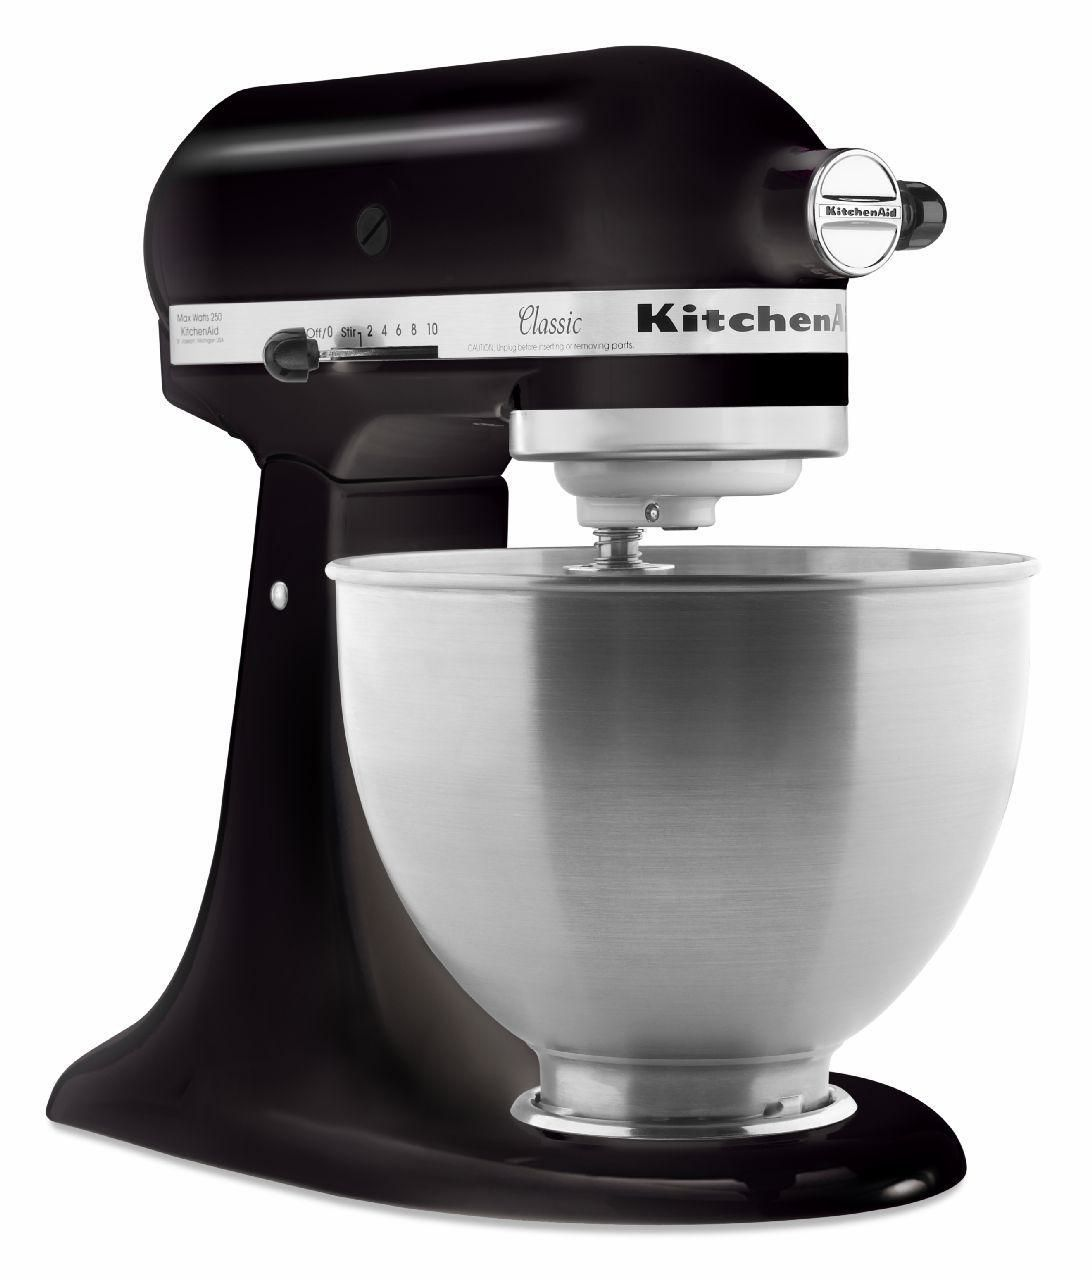 Kitchenaid Classic Plus 45 Qt Stand Mixer kitchenaid® classic series 4.5-quart tilt-head stand mixer